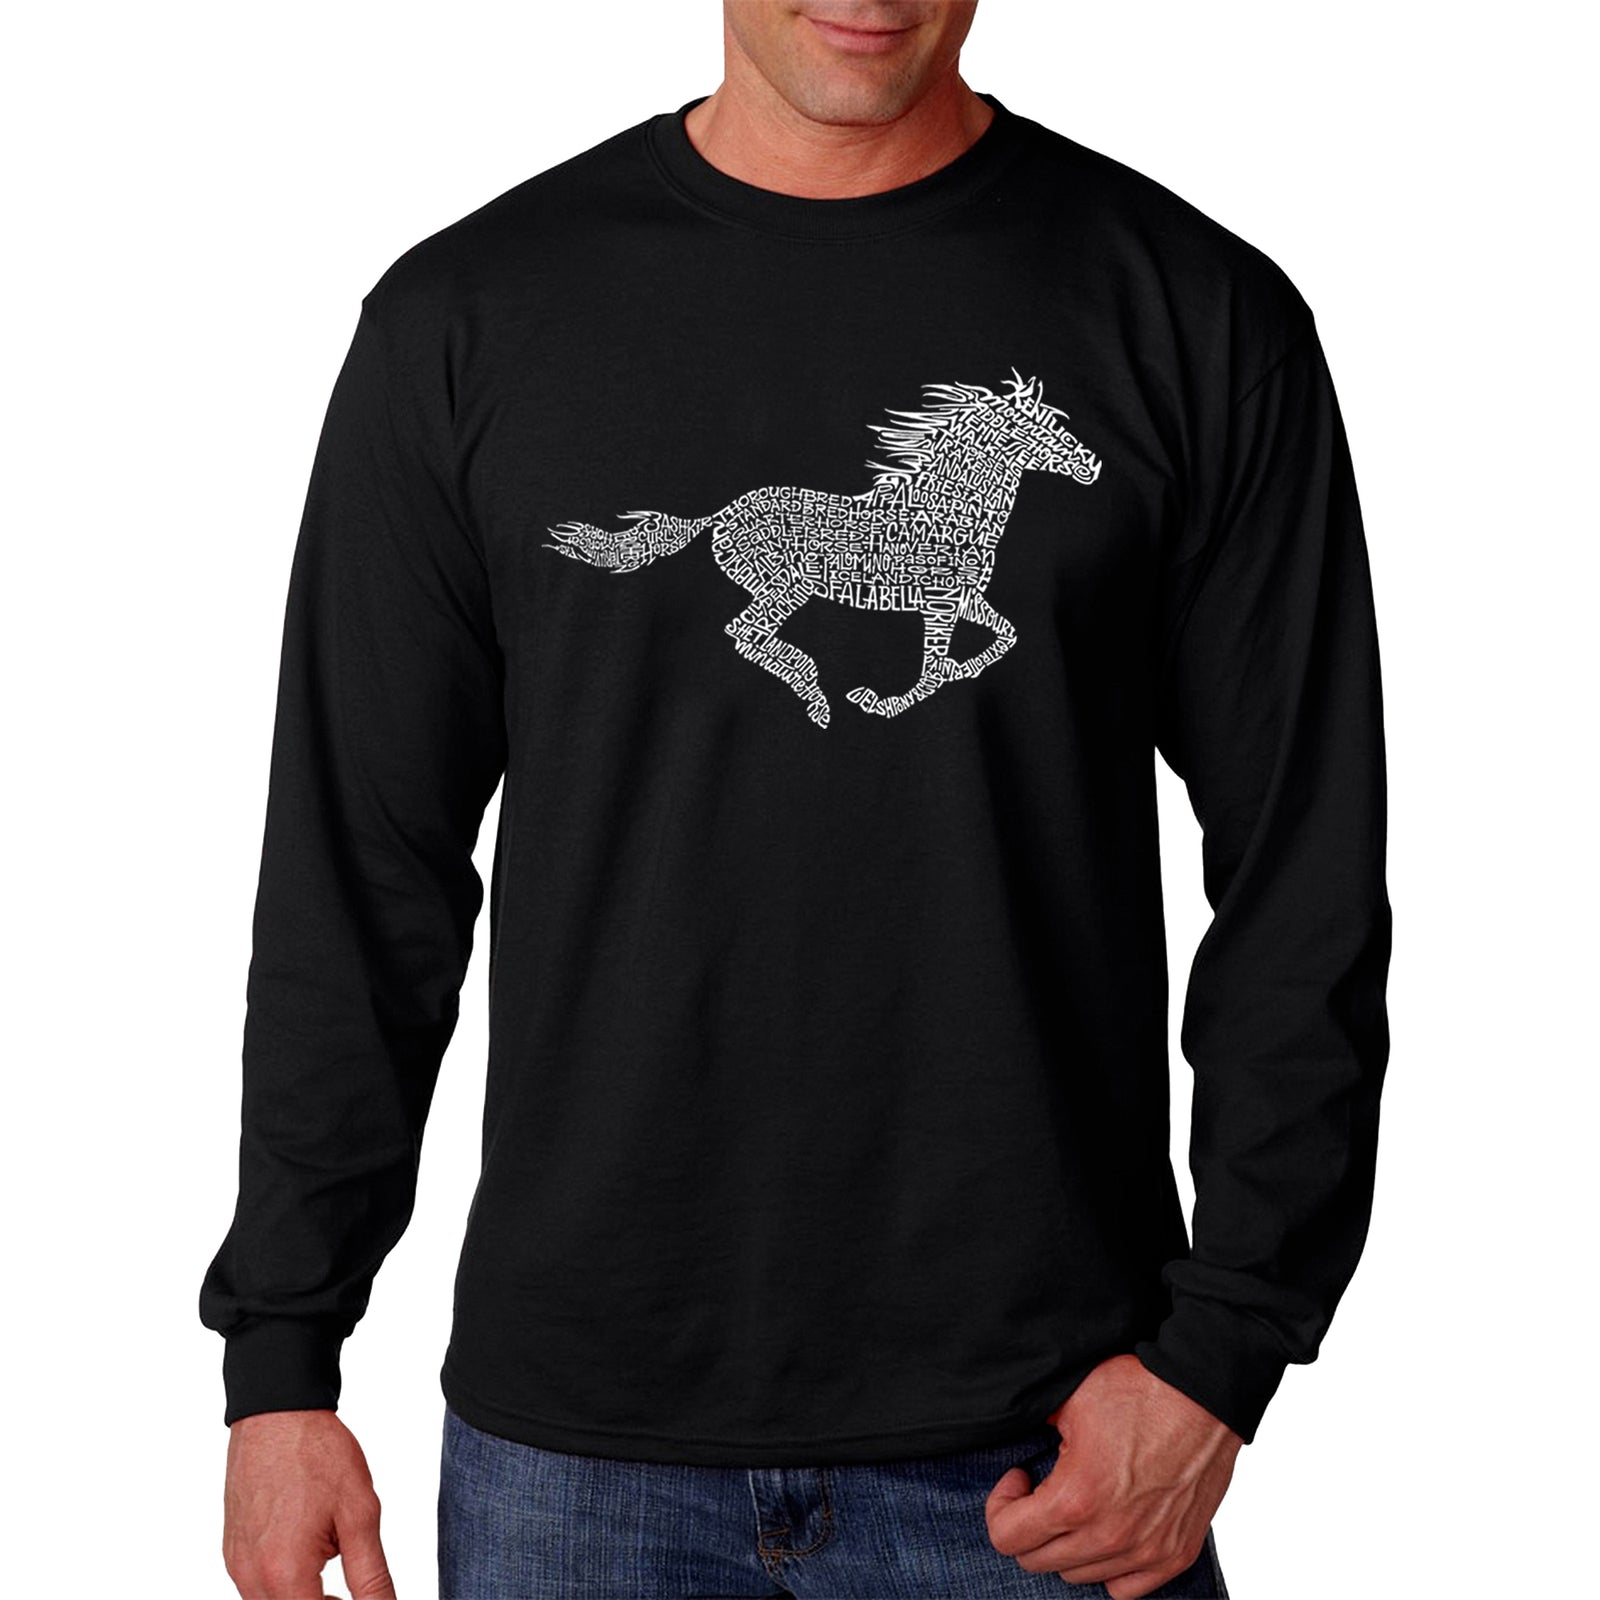 Men's Word Art Long Sleeve T-shirt - Horse Breeds